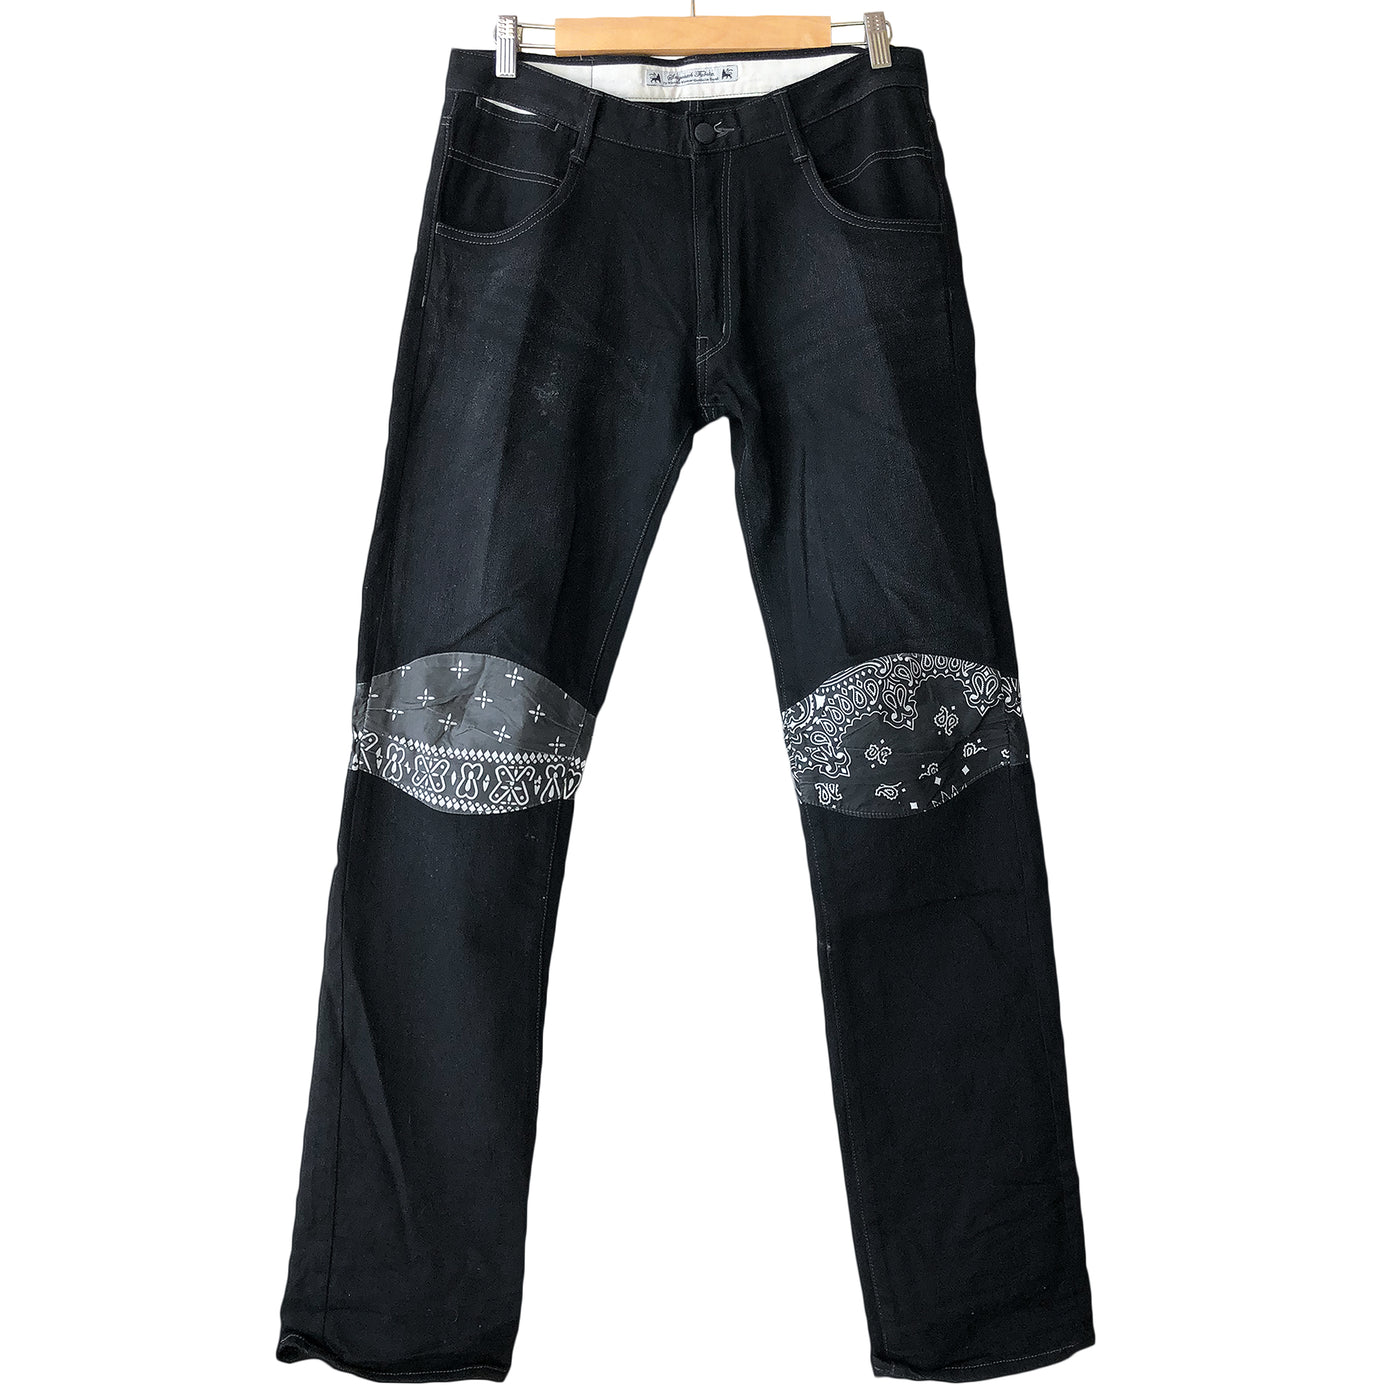 Sasquatchfabrix. Black Bandana Denim